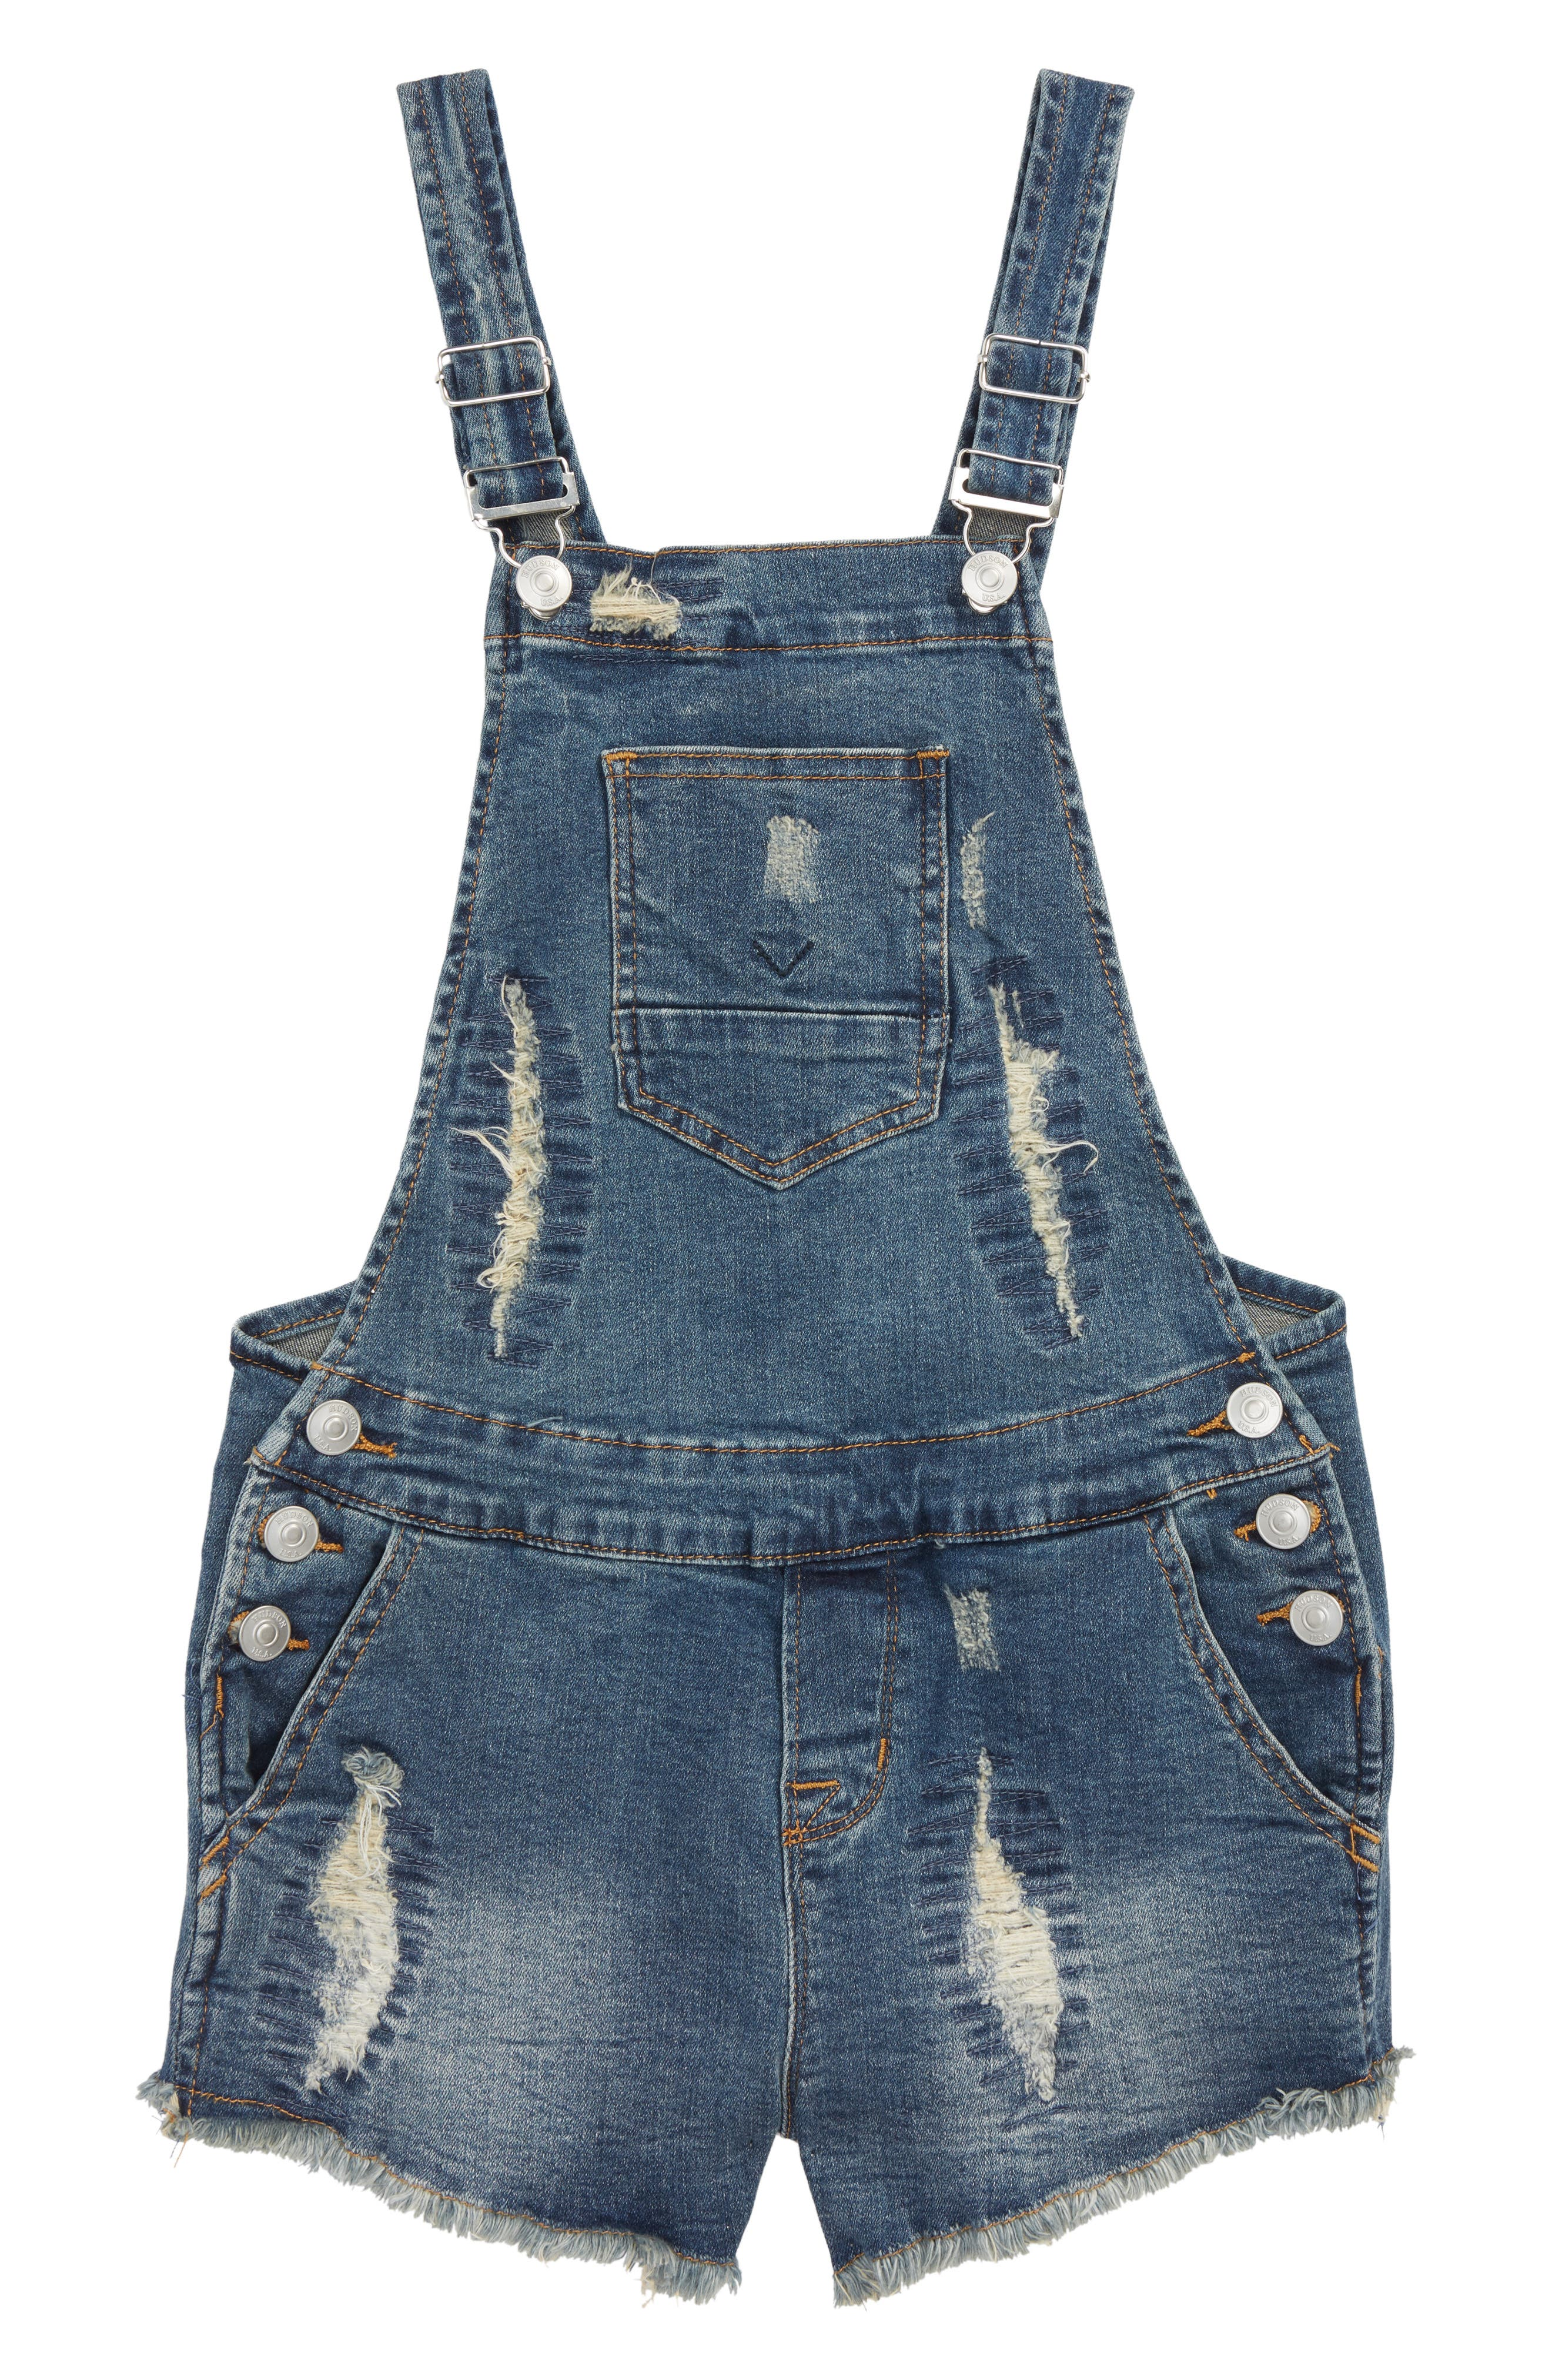 Distressed Short Overalls,                             Main thumbnail 1, color,                             477